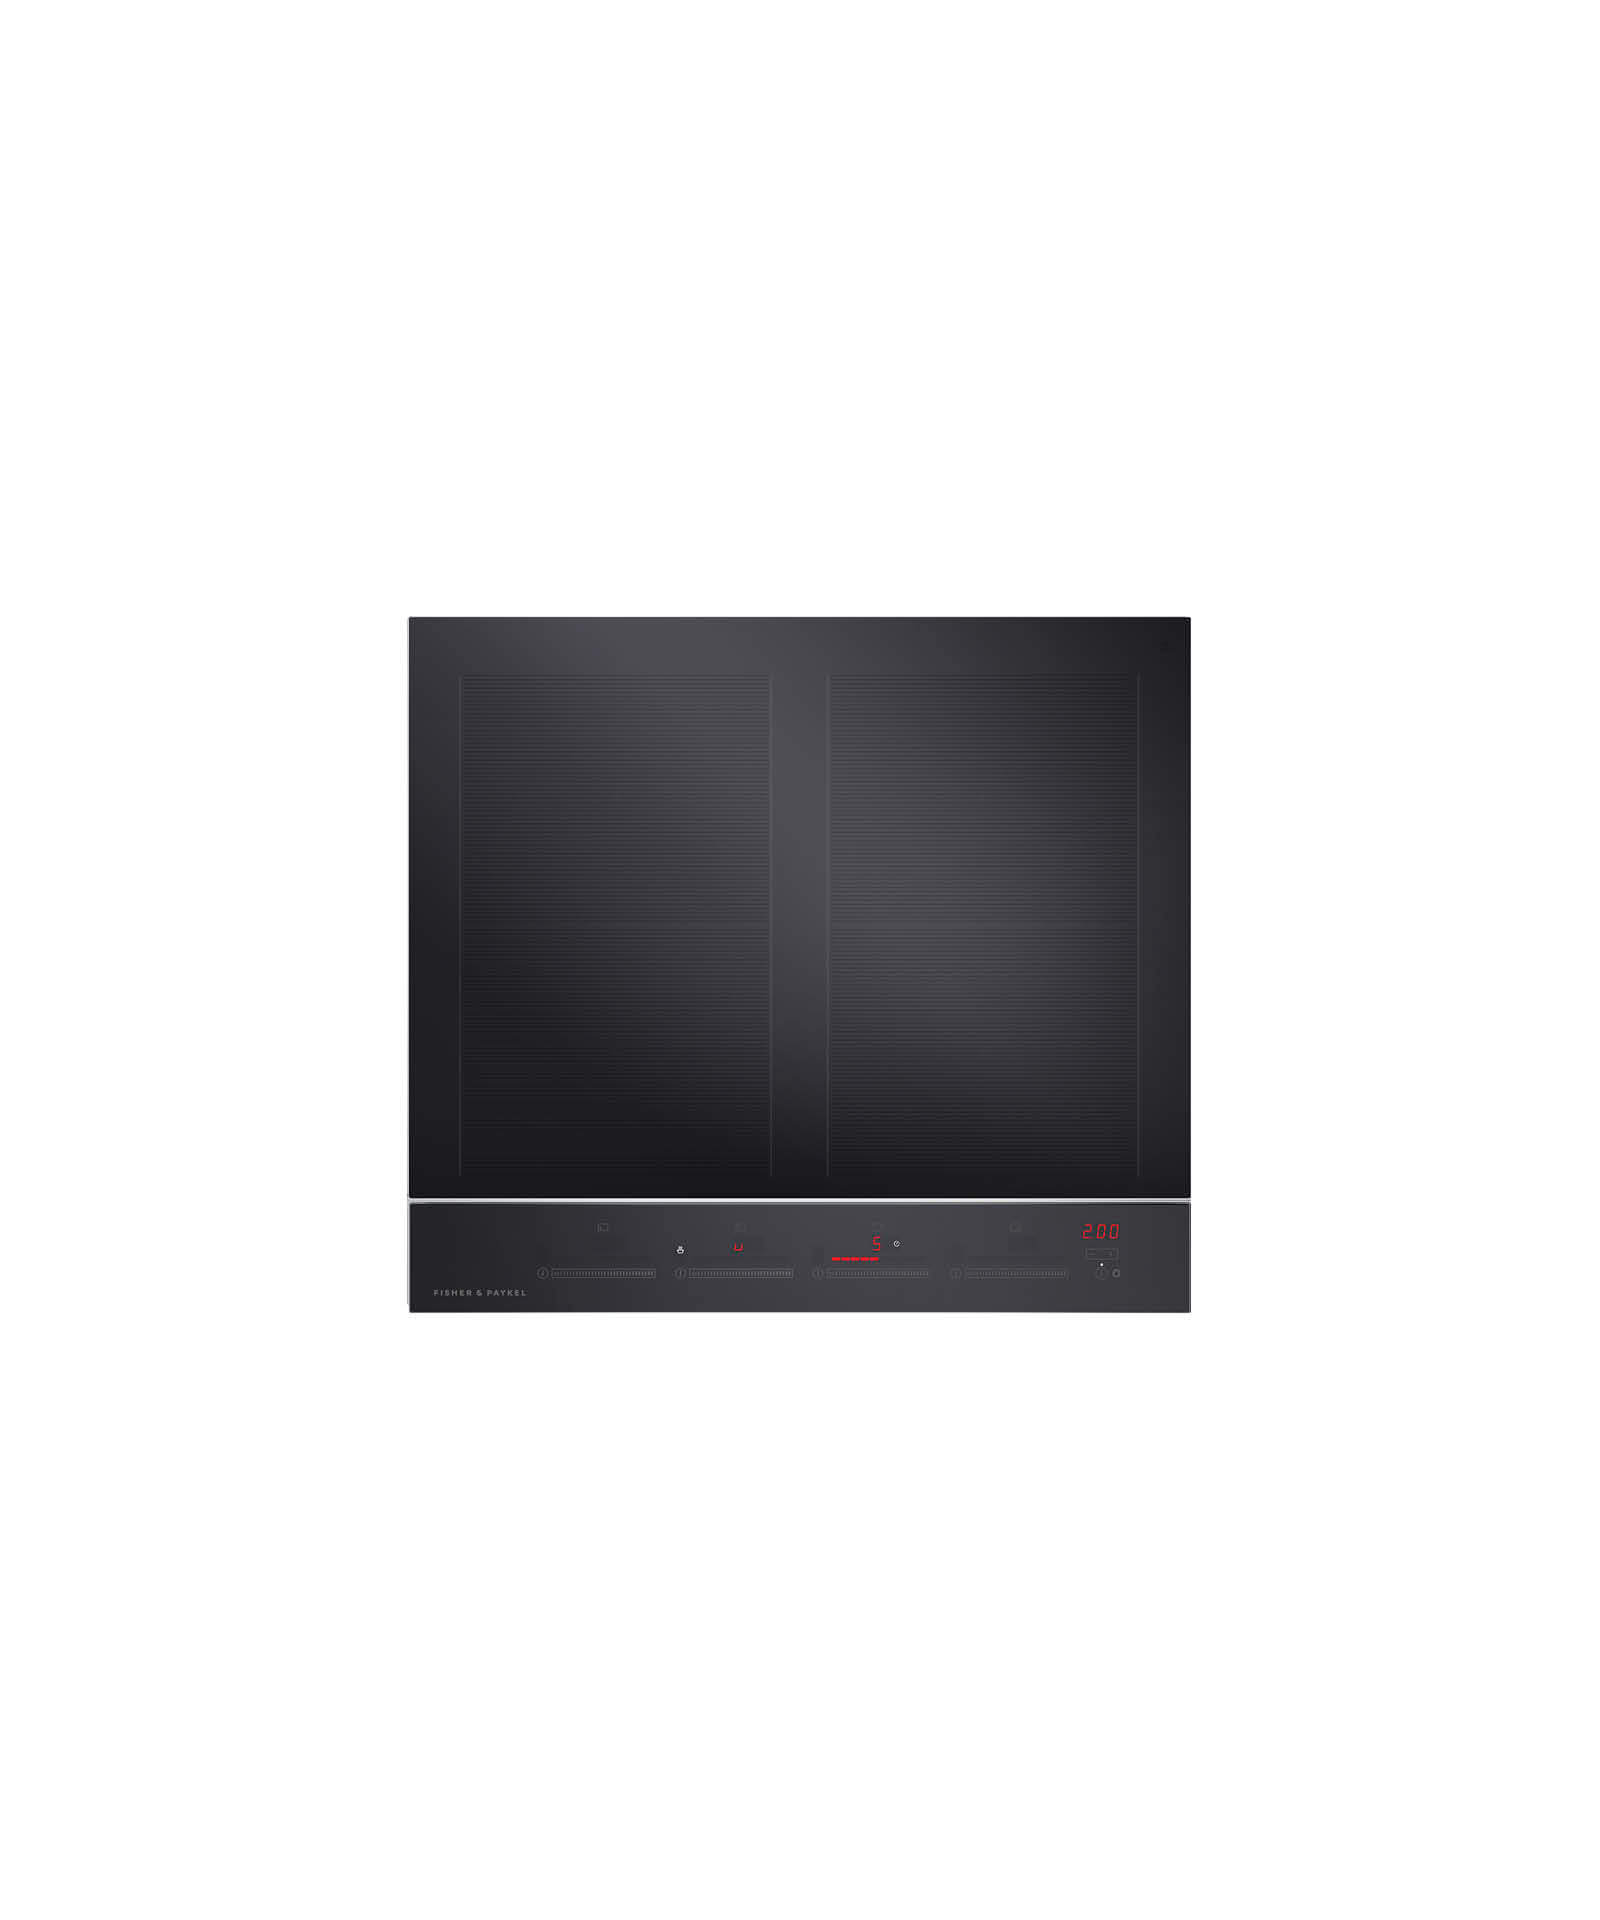 "Fisher and Paykel Induction Cooktop 24"" 4 Zone with SmartZone"